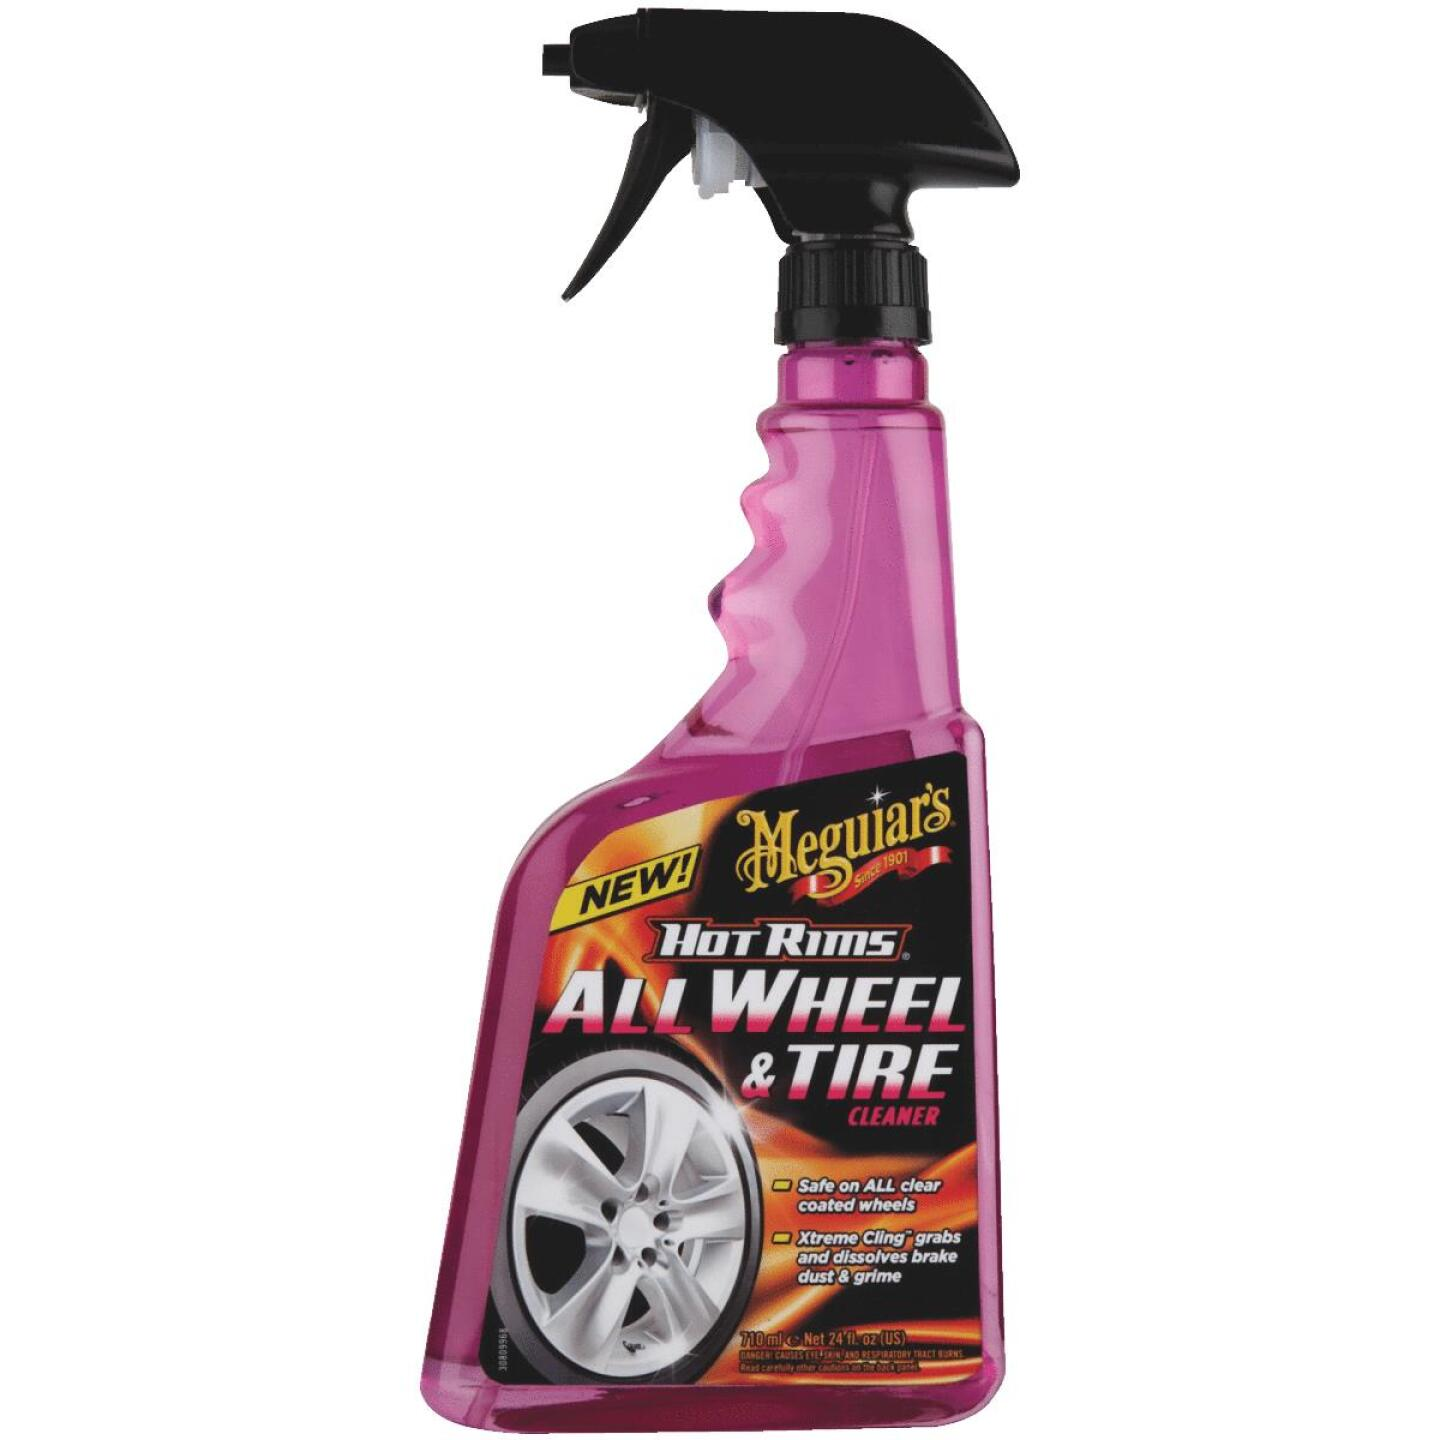 Meguiars Hot Rims 24 oz Trigger Spray Wheel Cleaner Image 2